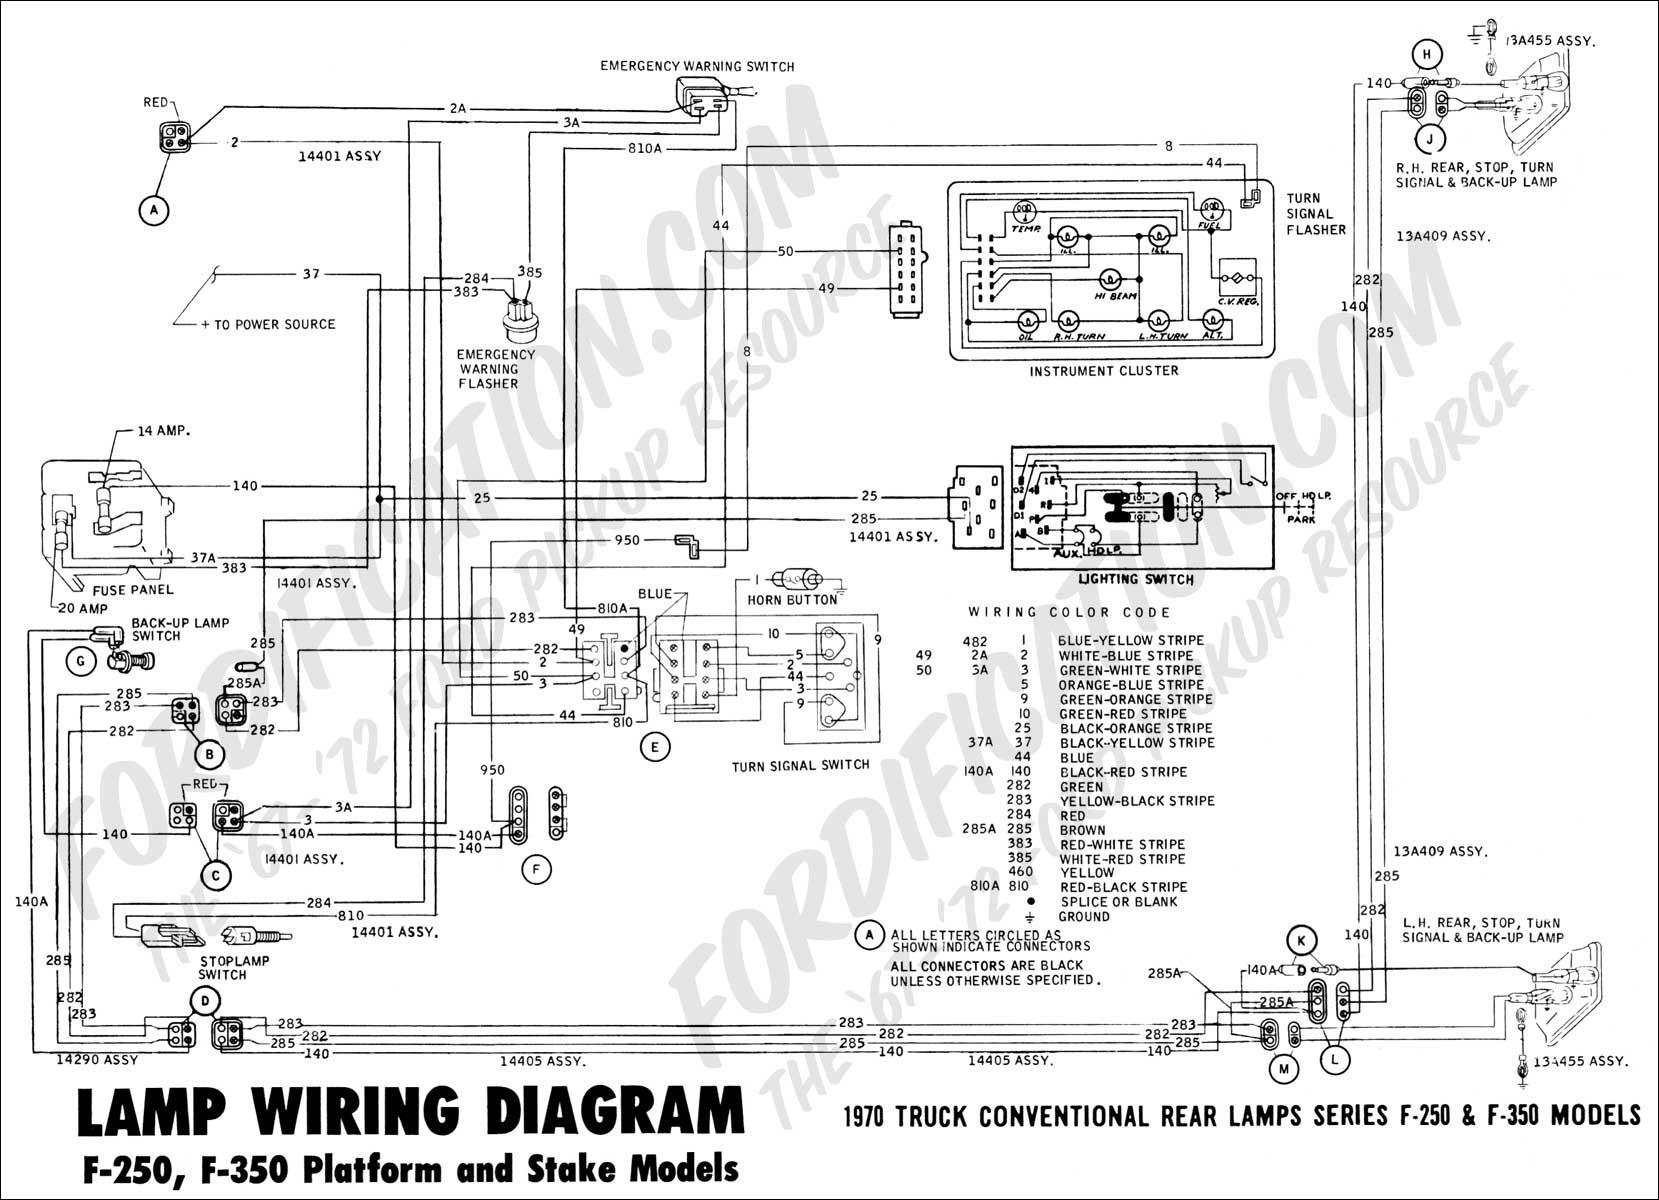 Agm Headlight Switch Wiring Electrical Diagrams Forum Diagram Vw Dimmer Data U2022 Rh Mikeadkinsguitar Com